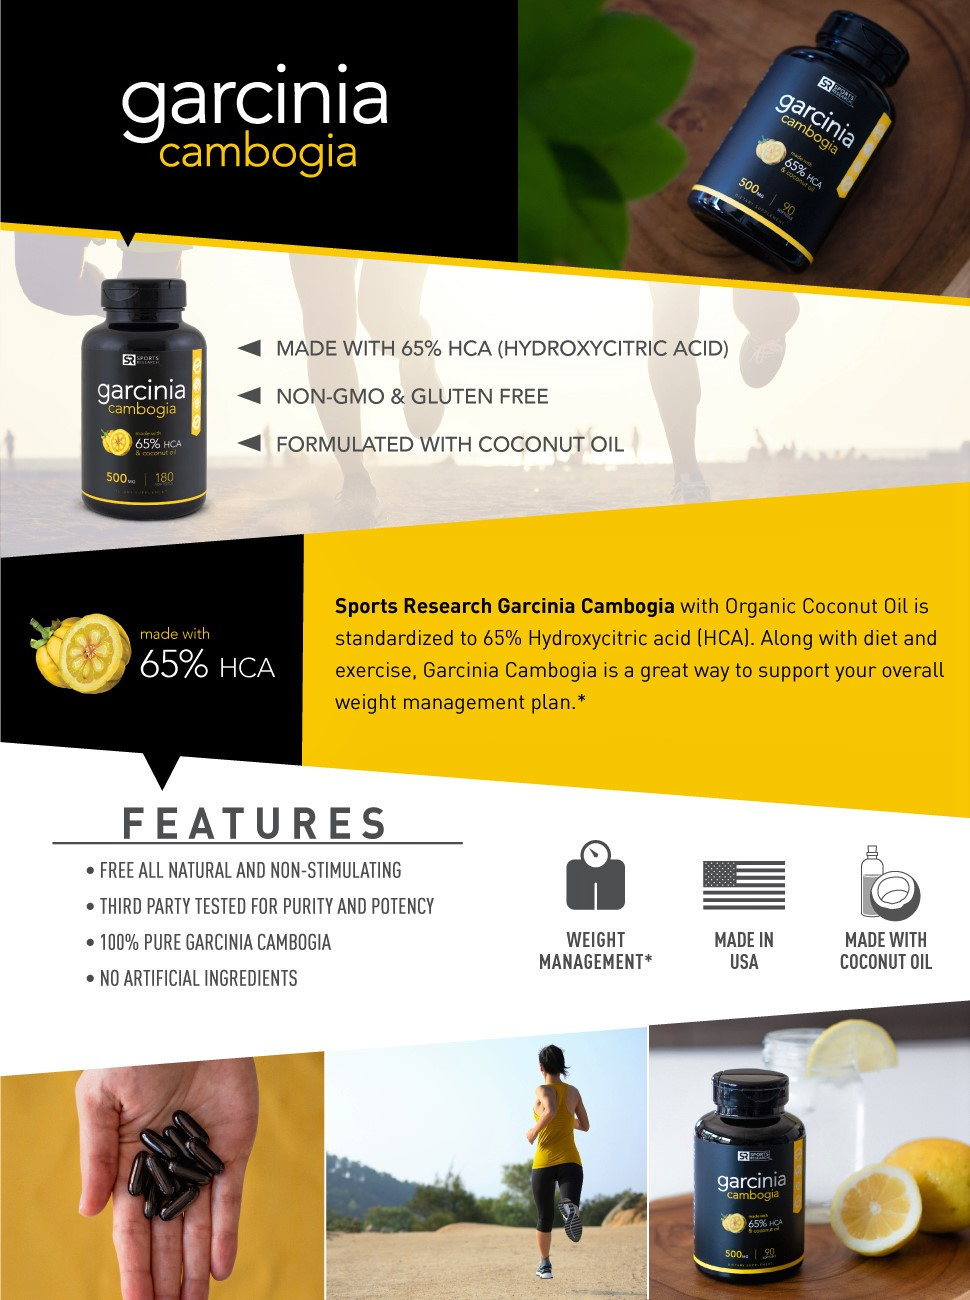 How Do I Get A Product Made Amazoncom Pure Garcinia Cambogia Extract With 65 Hca Made In